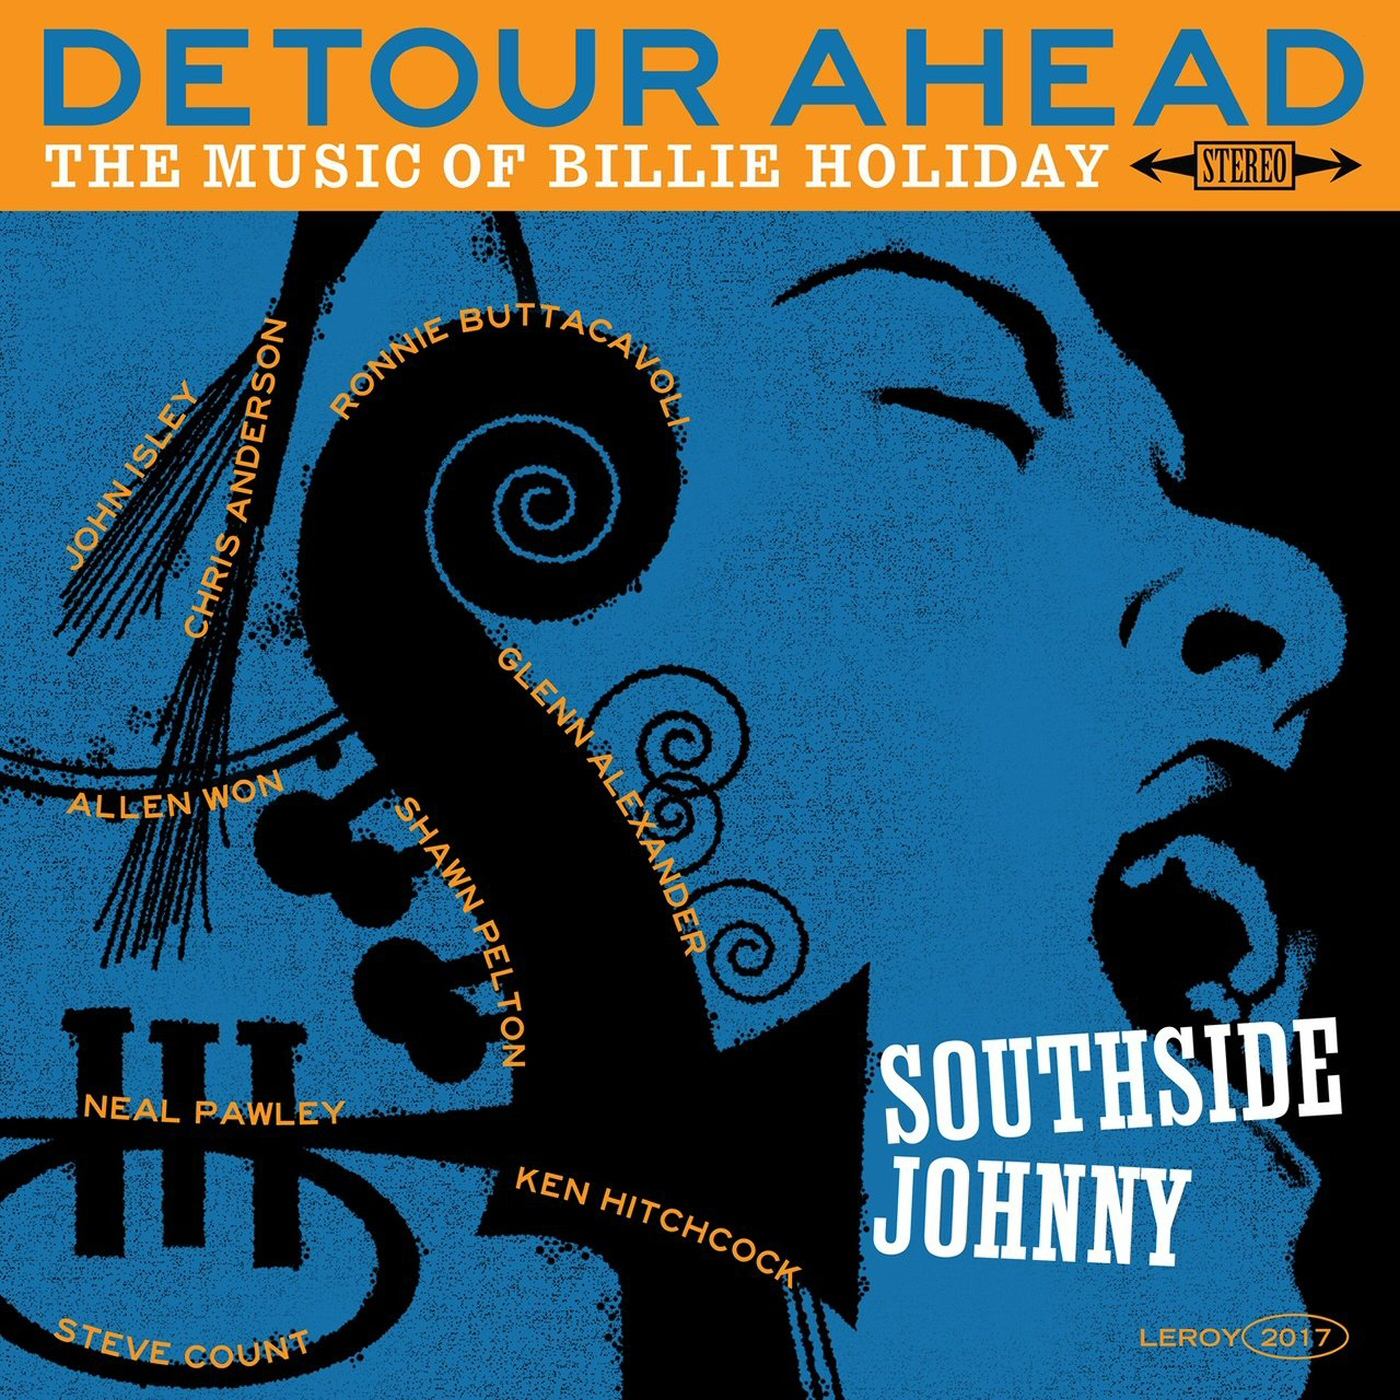 Southside Johnny - Page 2 180211045055367484